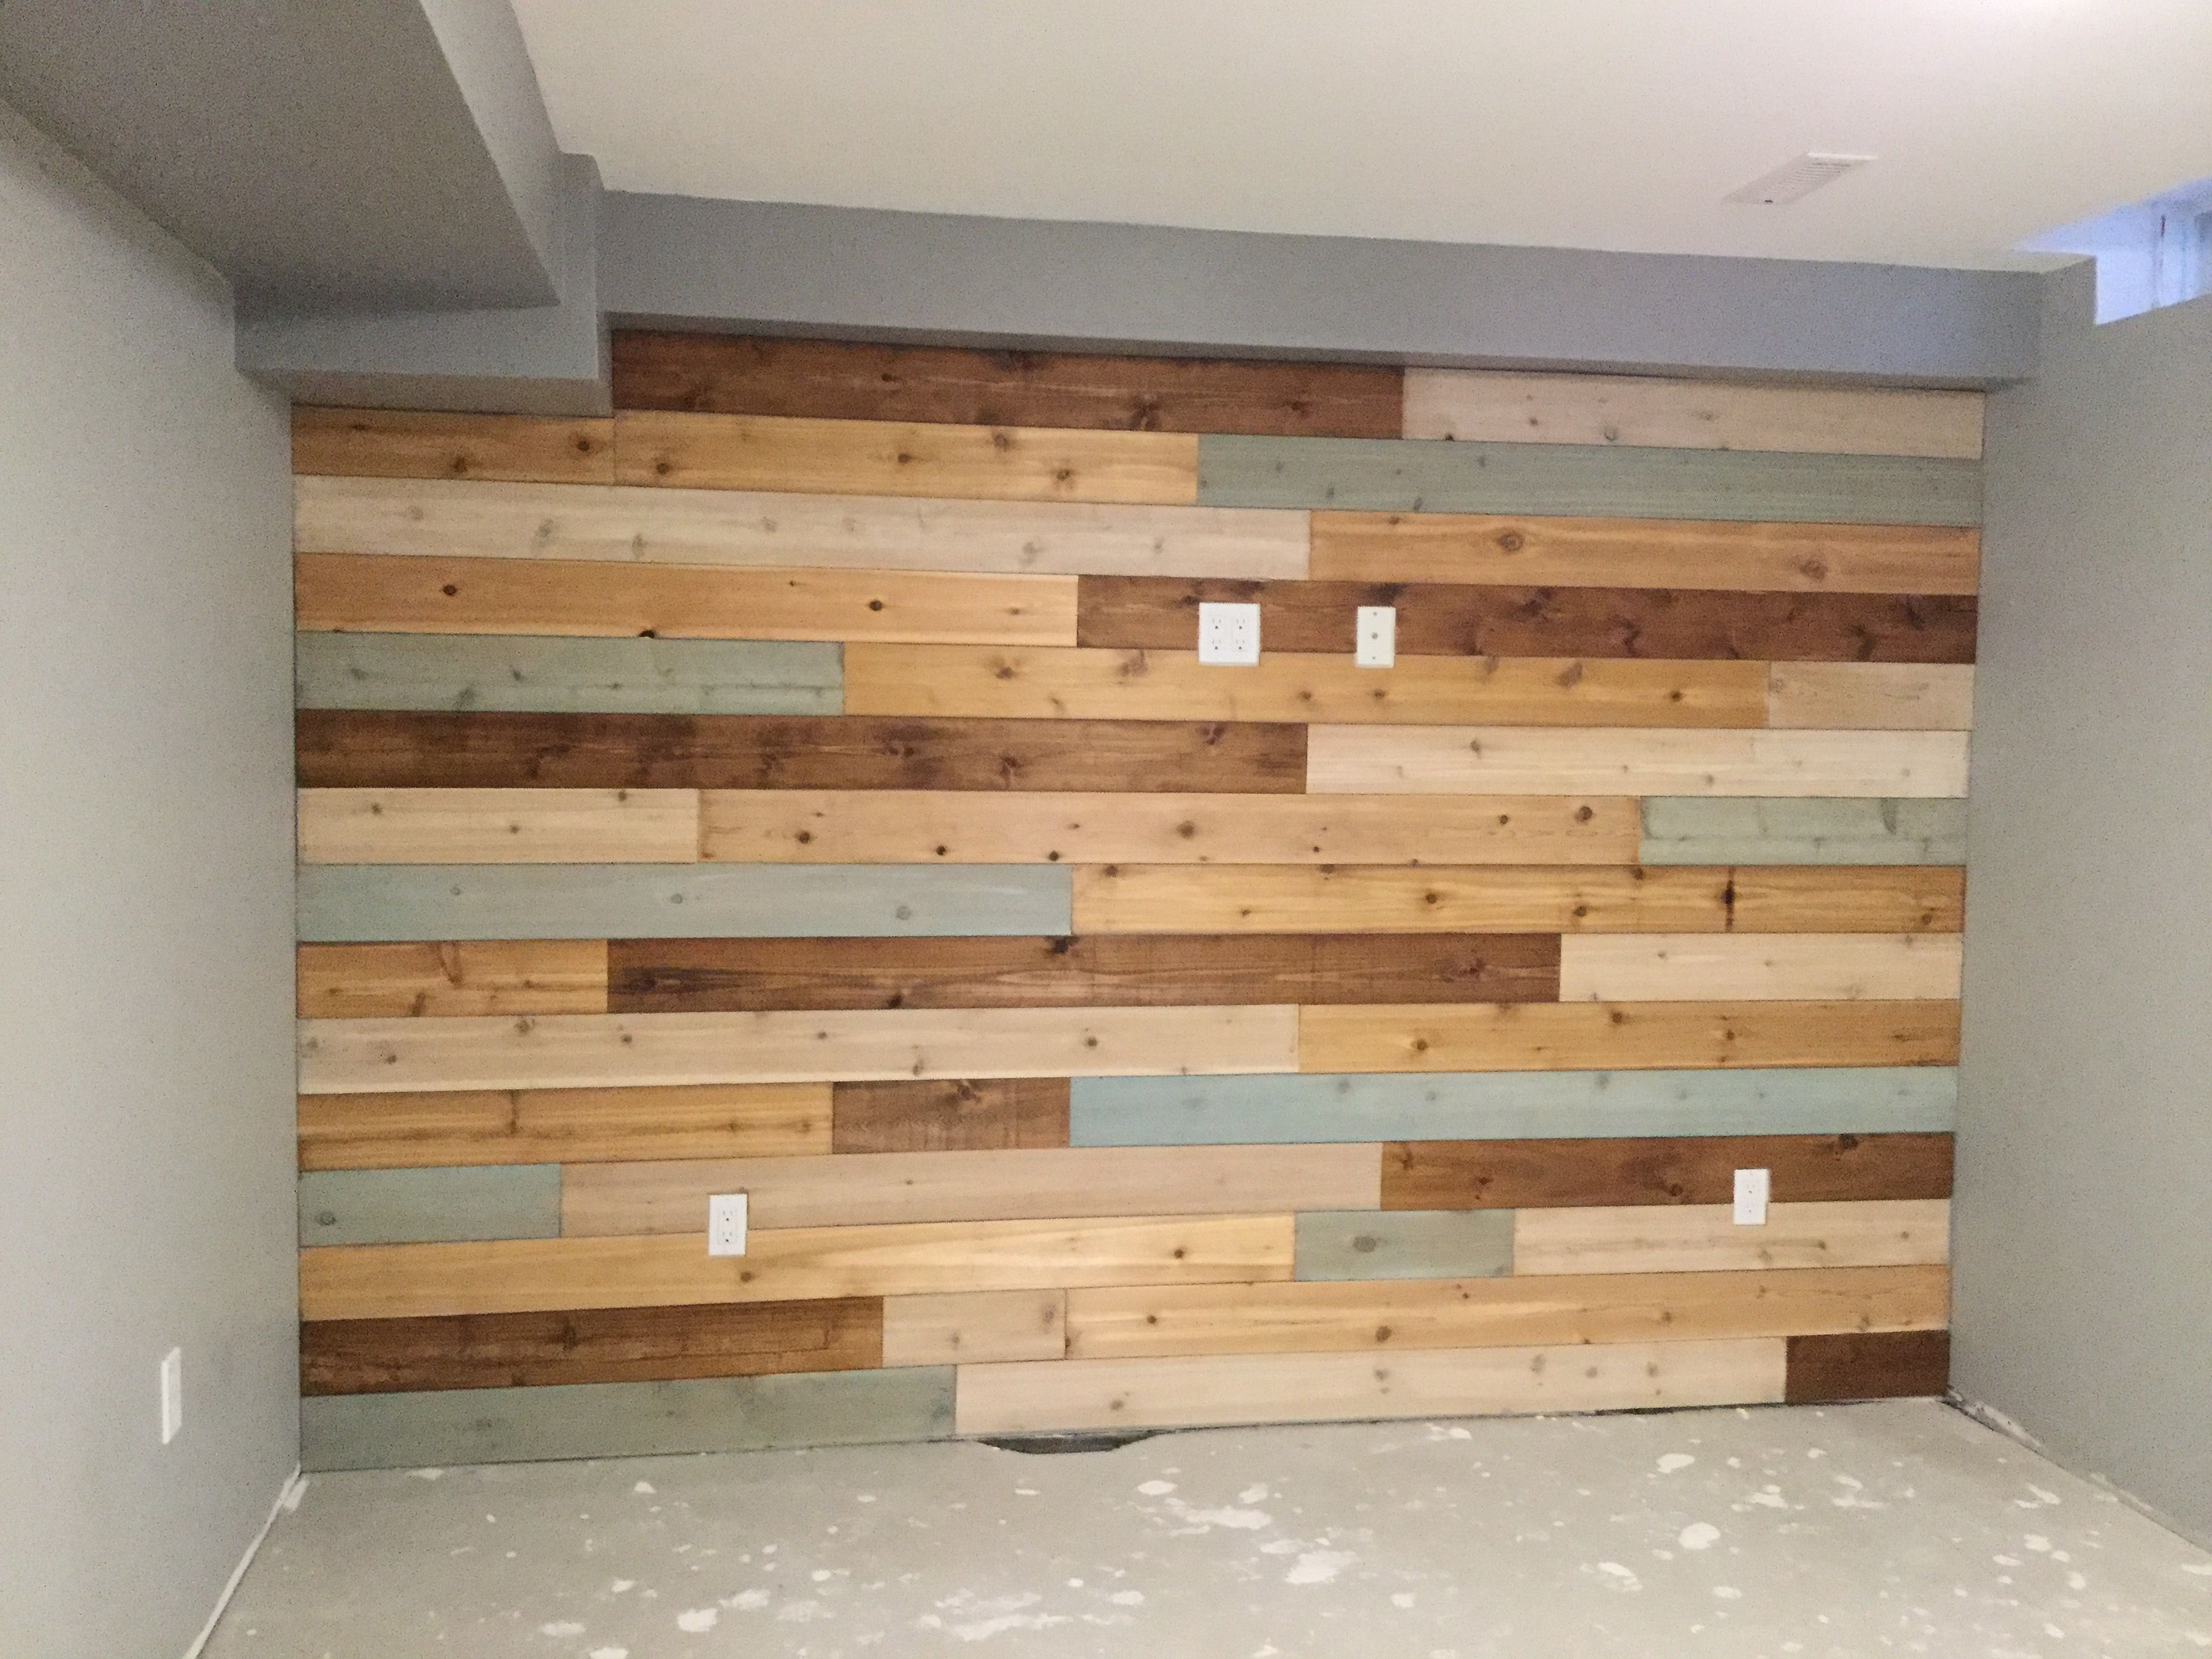 Basement wall finished with cedar boards and different finishes